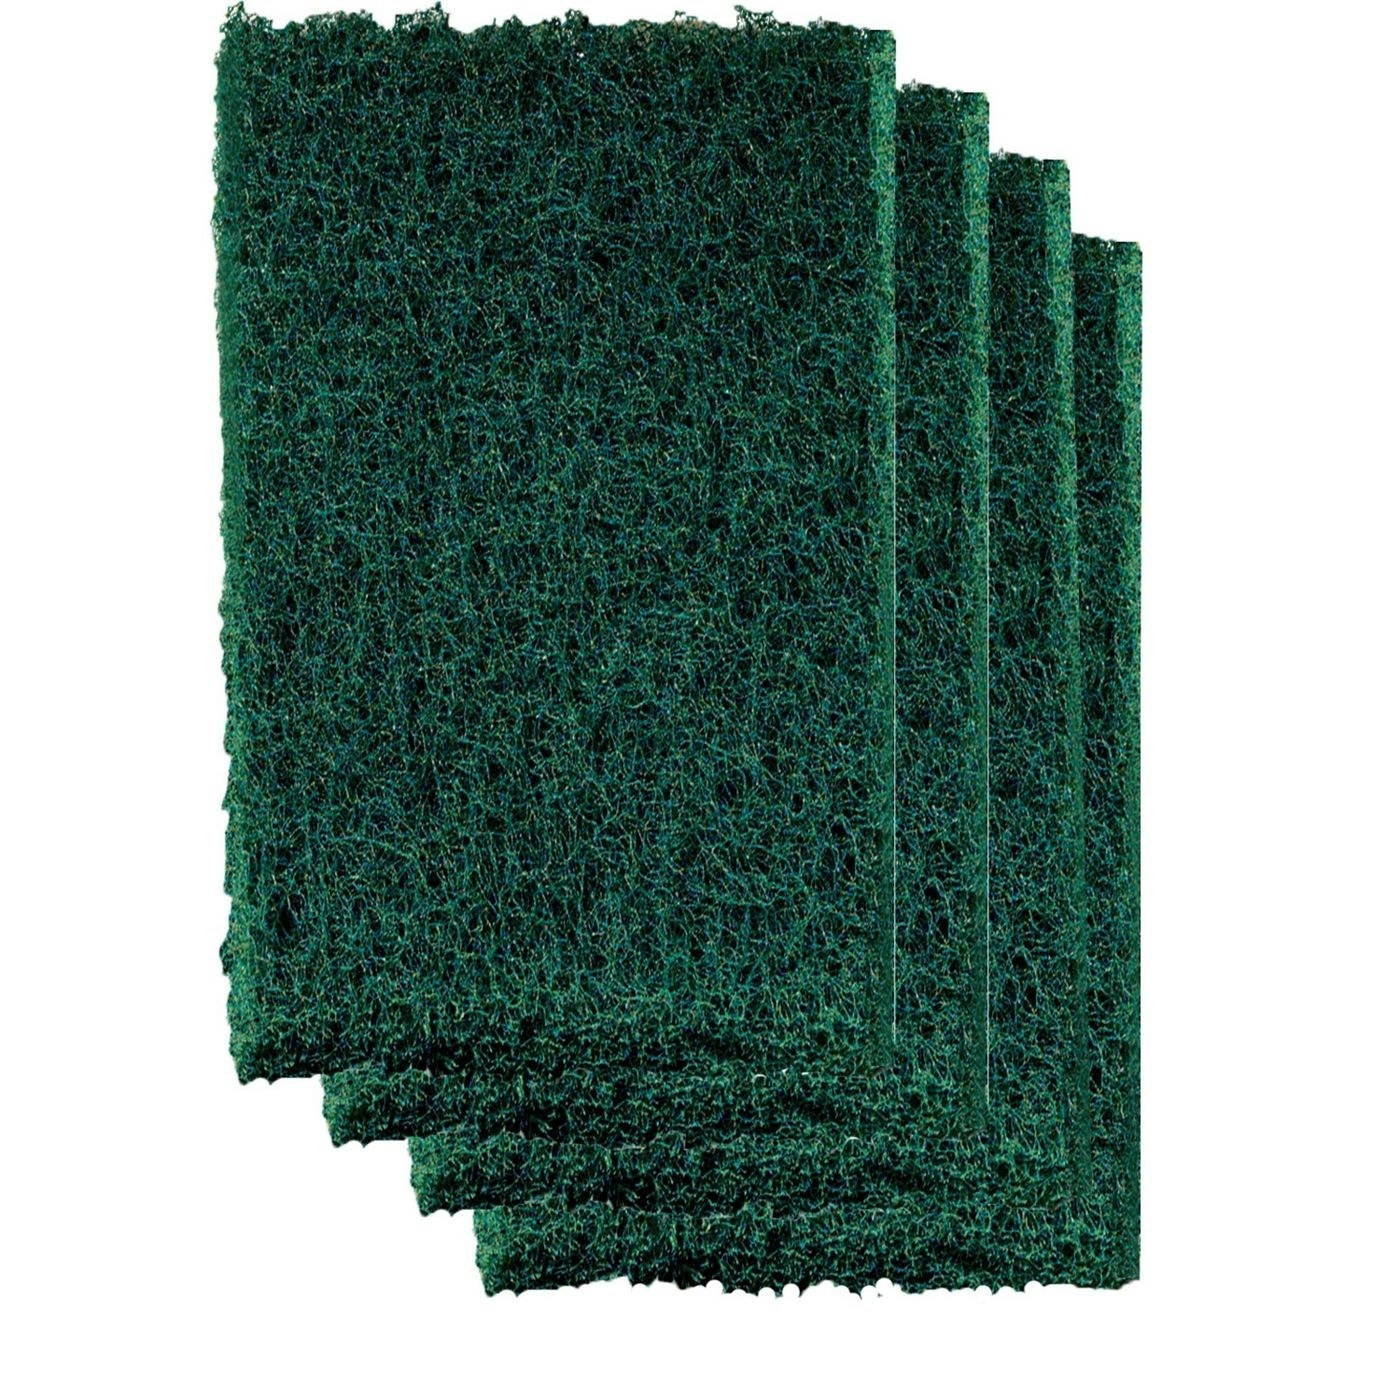 Four green scouring sponges